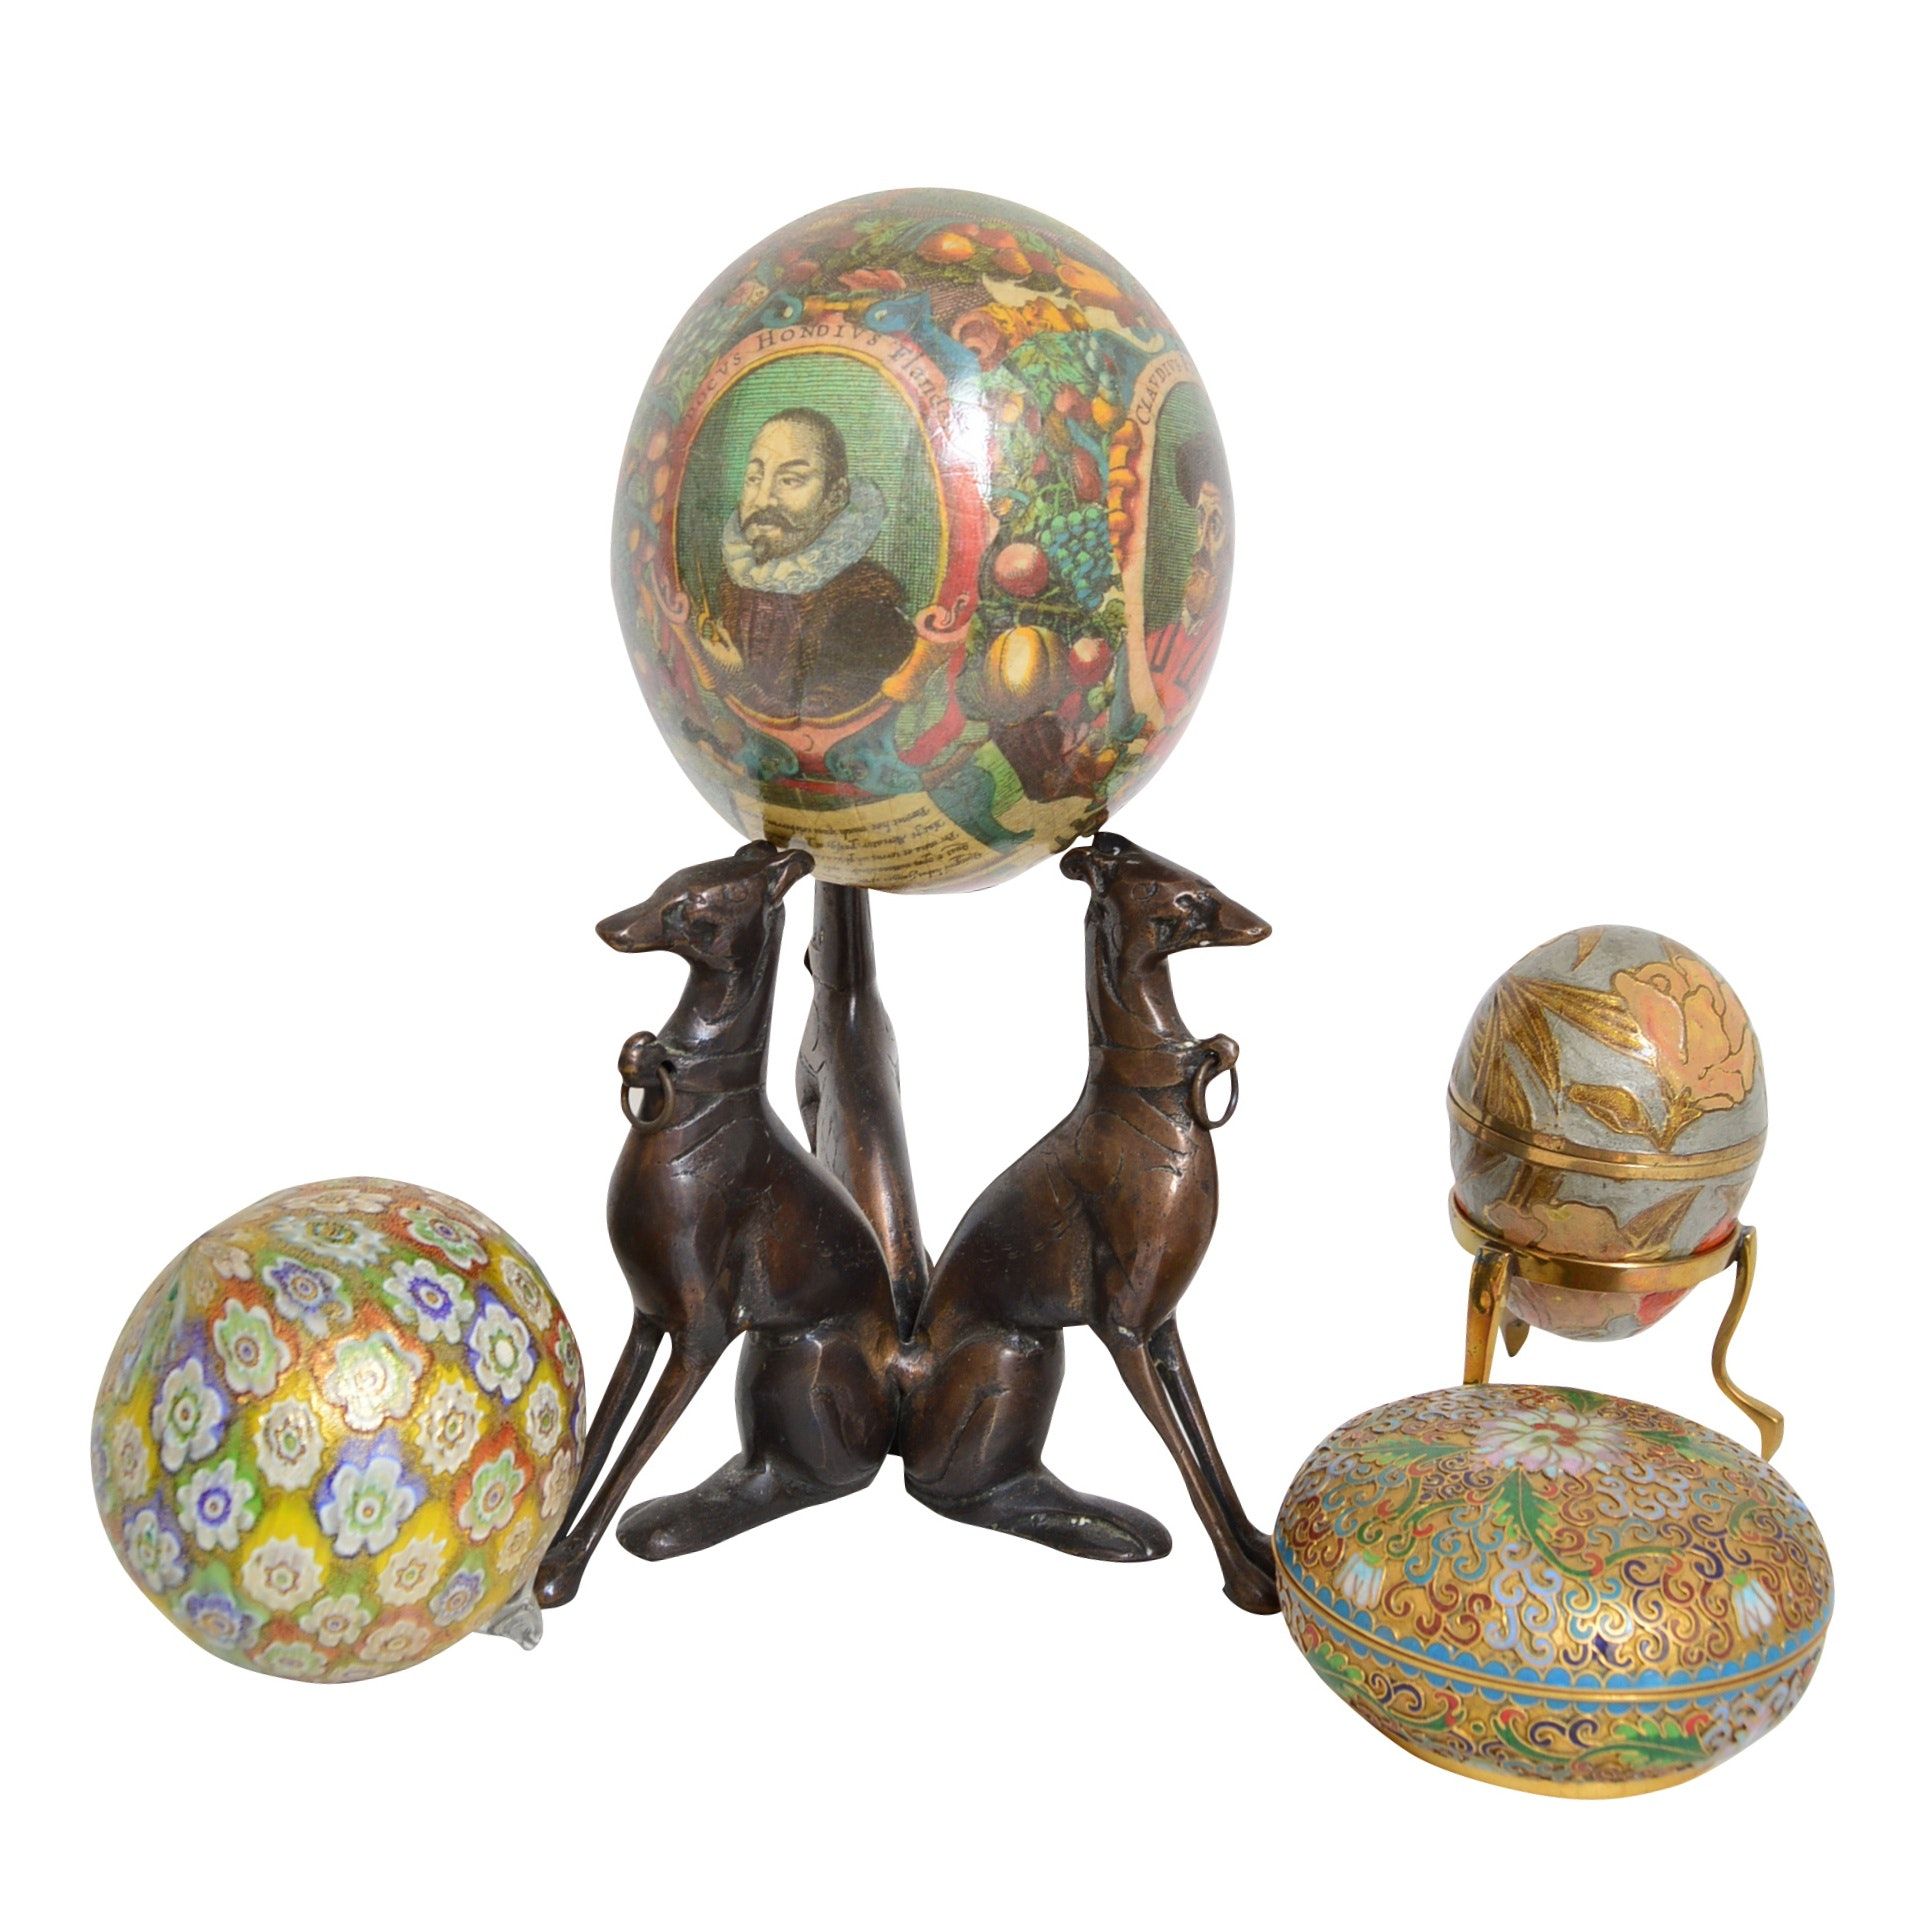 Cloisonne Trinket Box and Egg Box on Stand, Ornament and Decoupage Egg on Stand